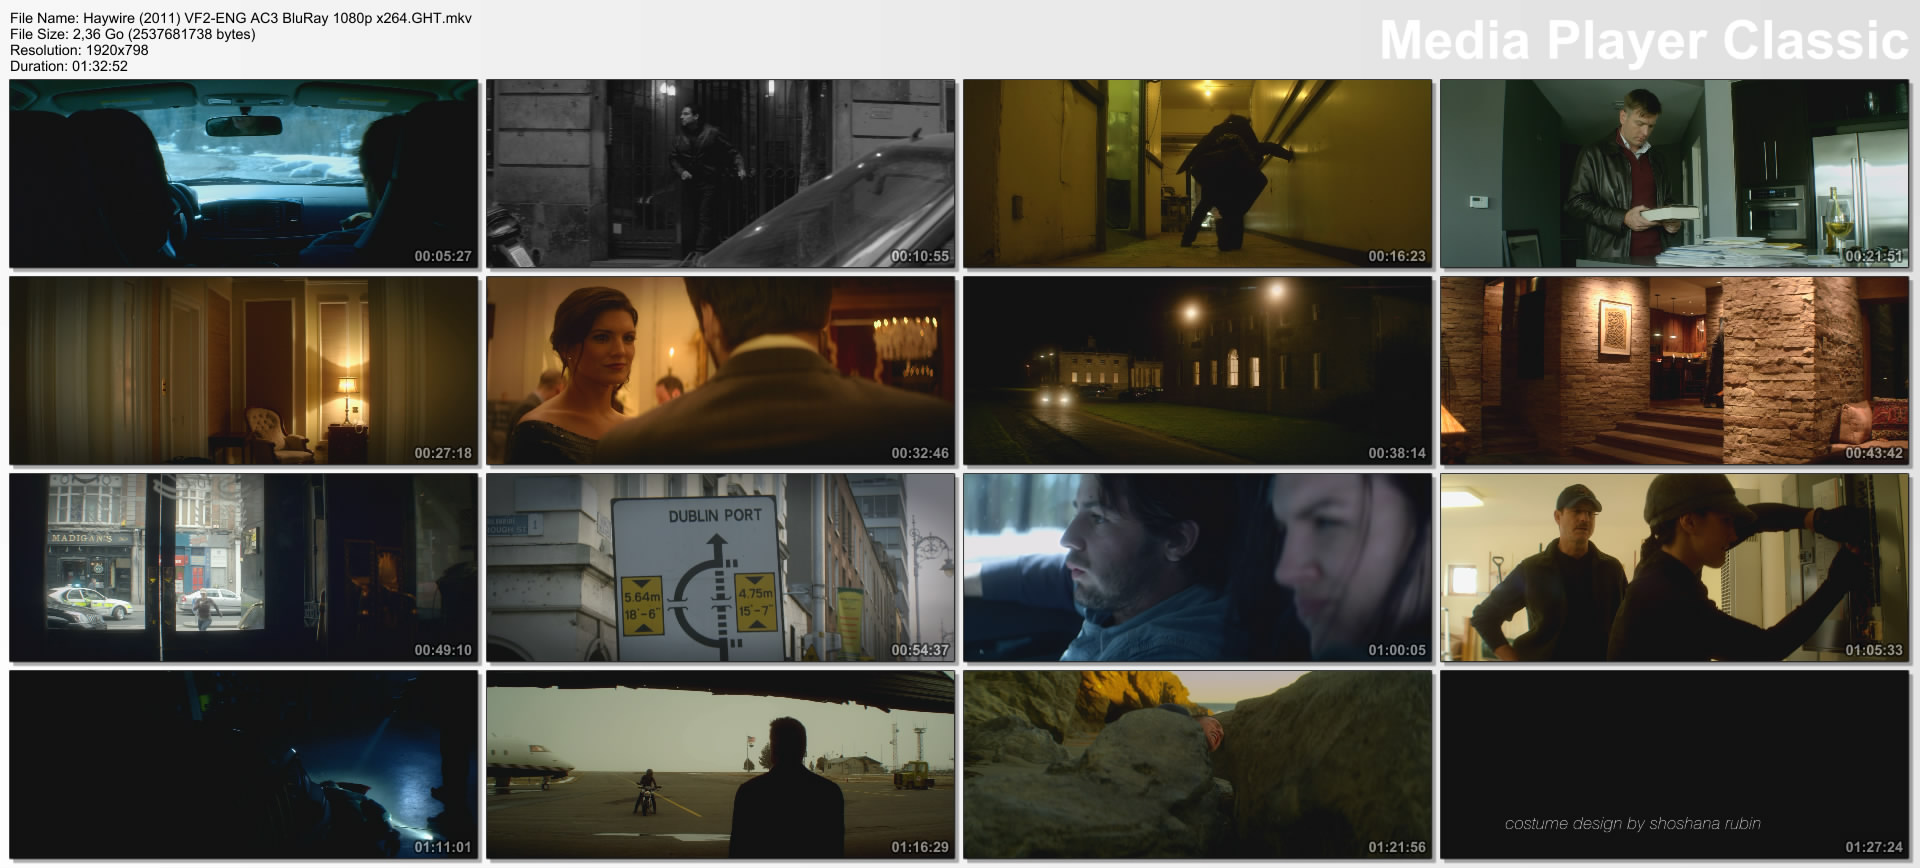 Haywire (2011) VF2-ENG AC3 BluRay 1080p x264.GHT